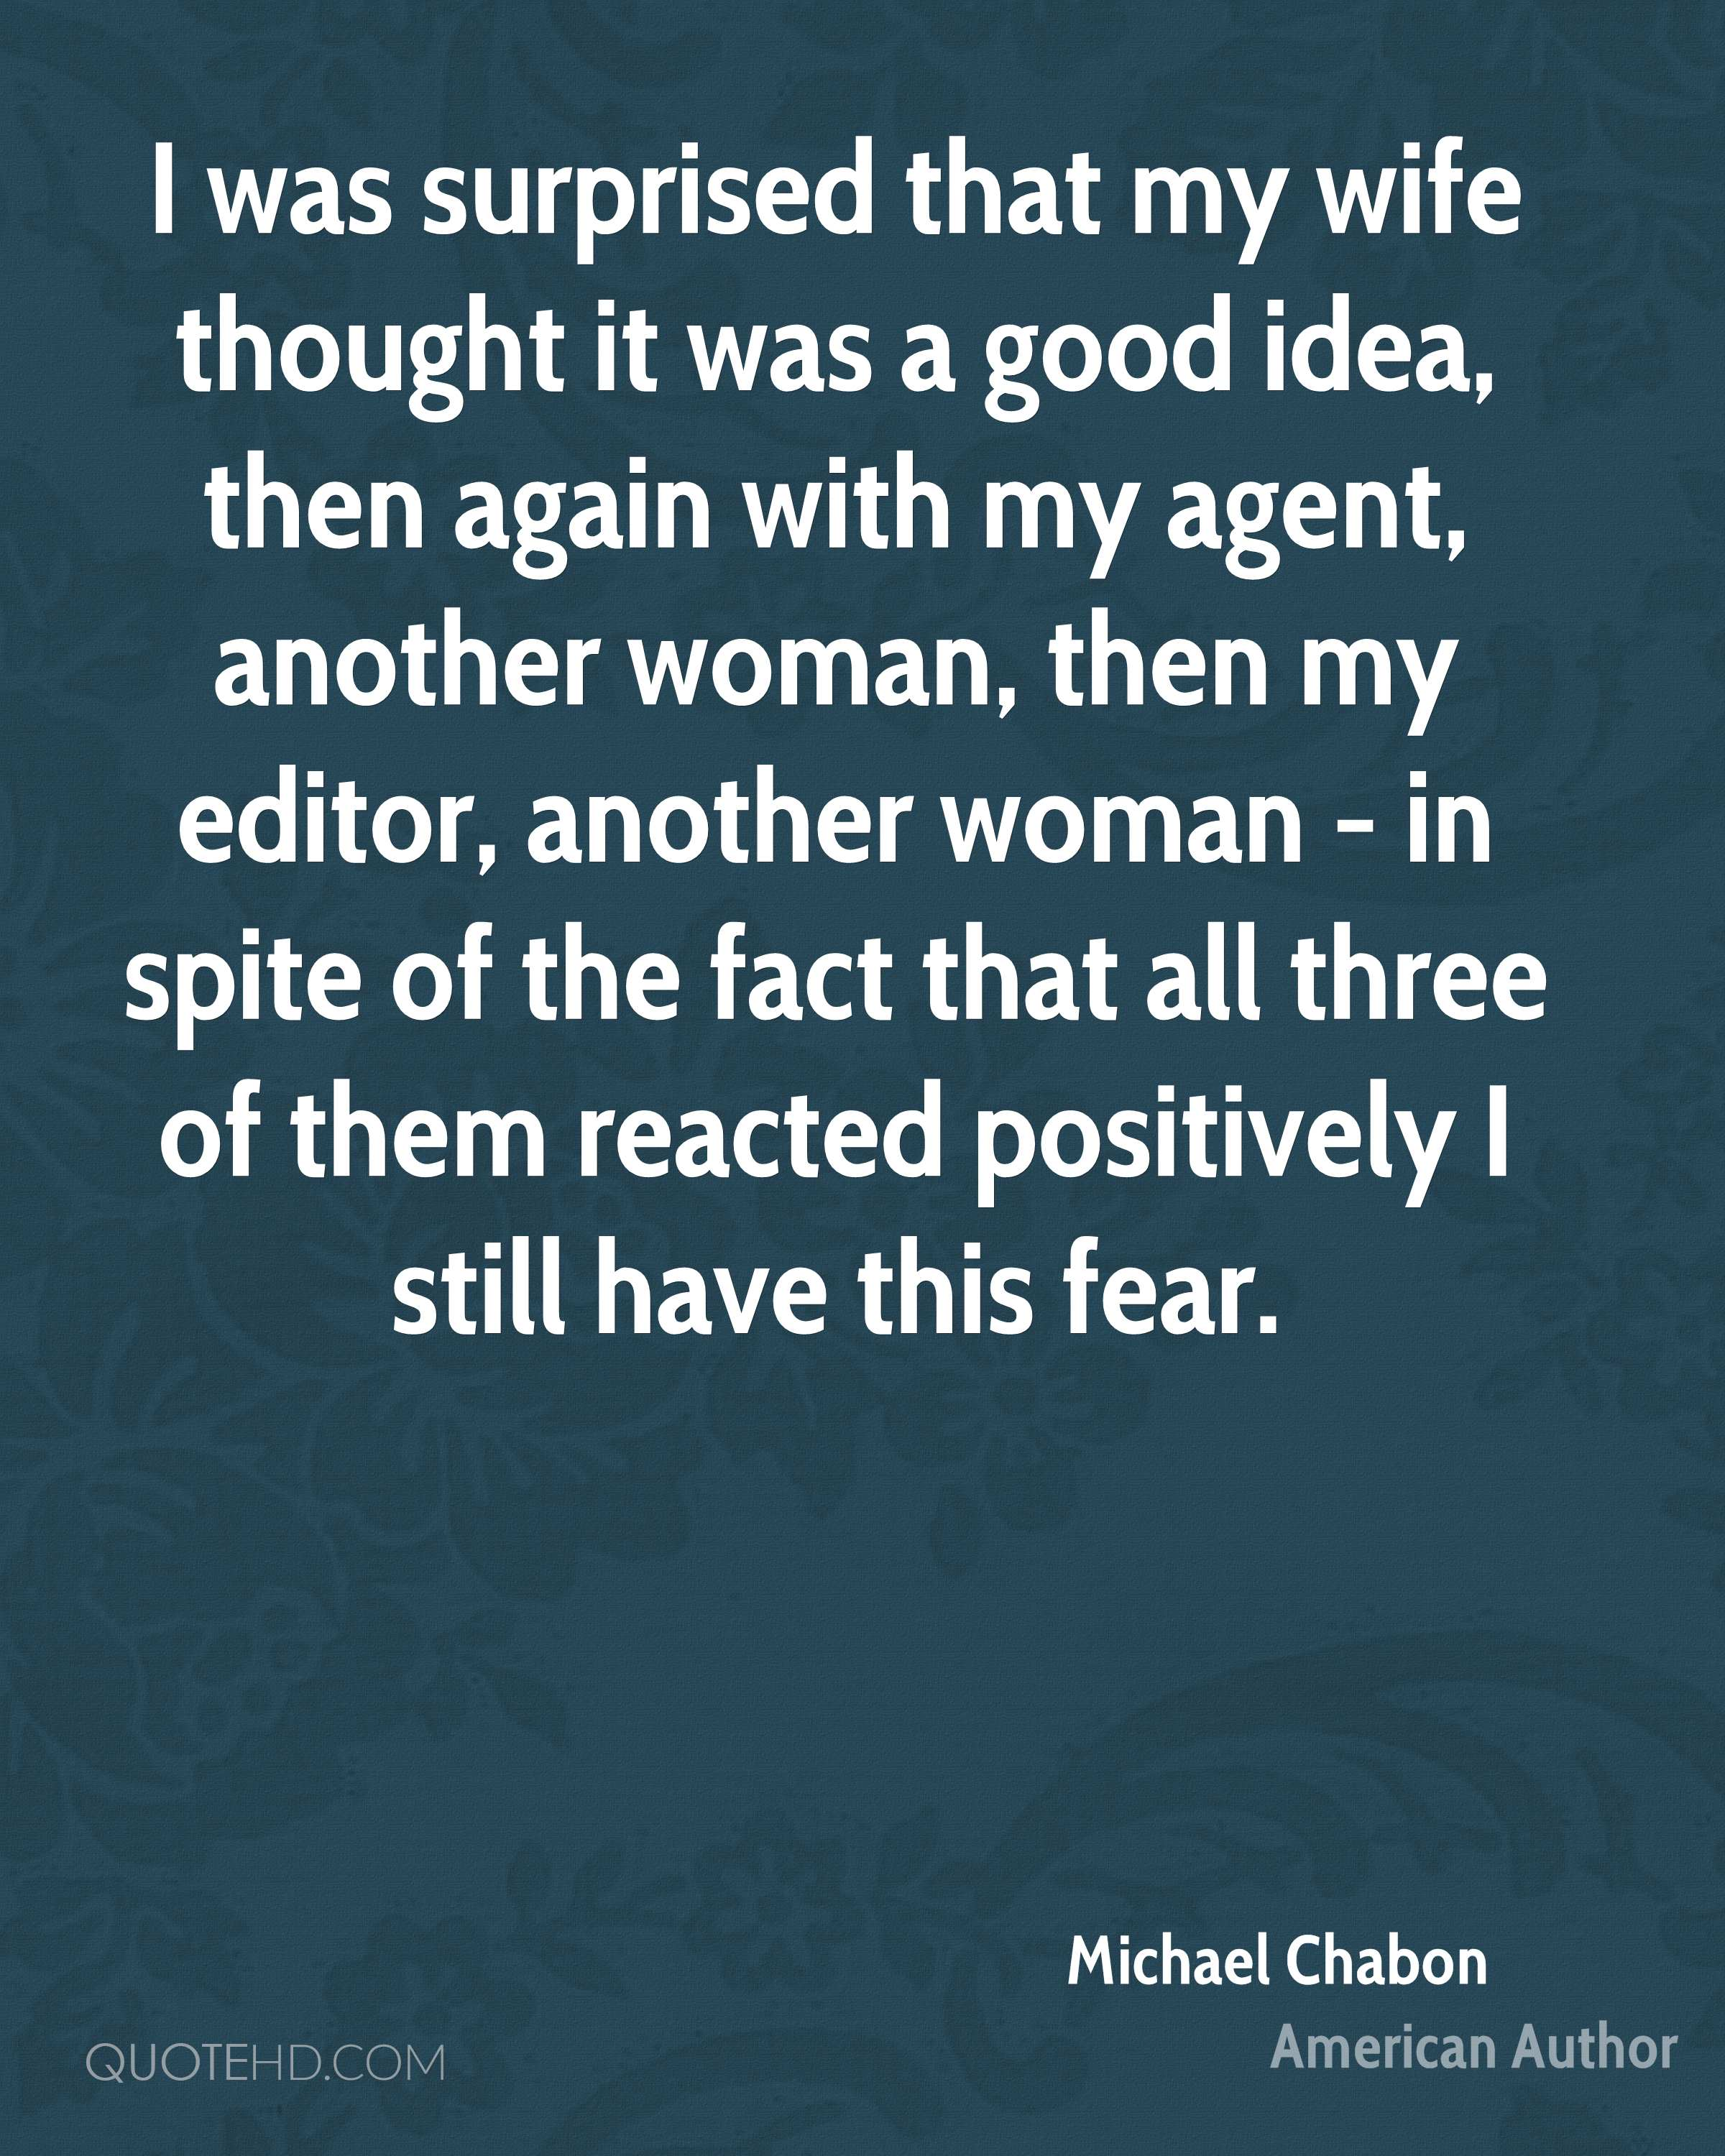 I was surprised that my wife thought it was a good idea, then again with my agent, another woman, then my editor, another woman - in spite of the fact that all three of them reacted positively I still have this fear.